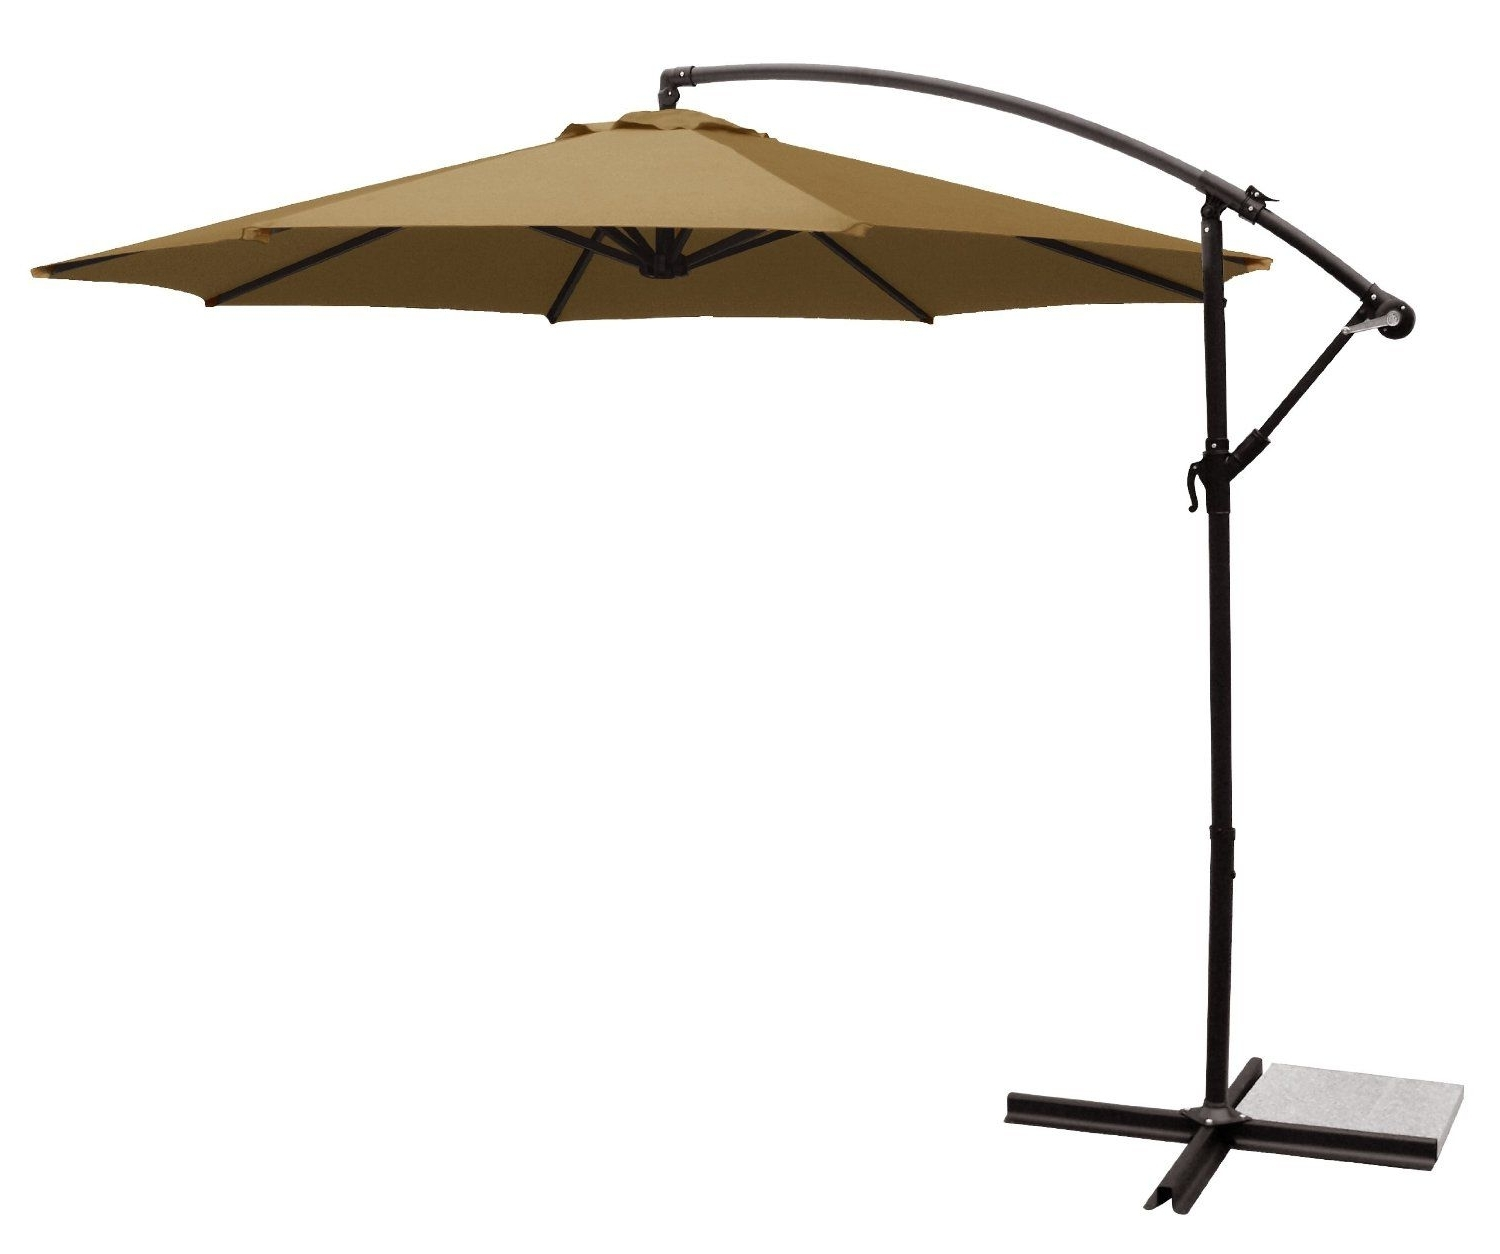 Favorite Amazon : Ace Evert Offset Umbrella 8074, 10 Ft, Polyester, Terra Inside Offset Patio Umbrellas With Base (Gallery 16 of 20)